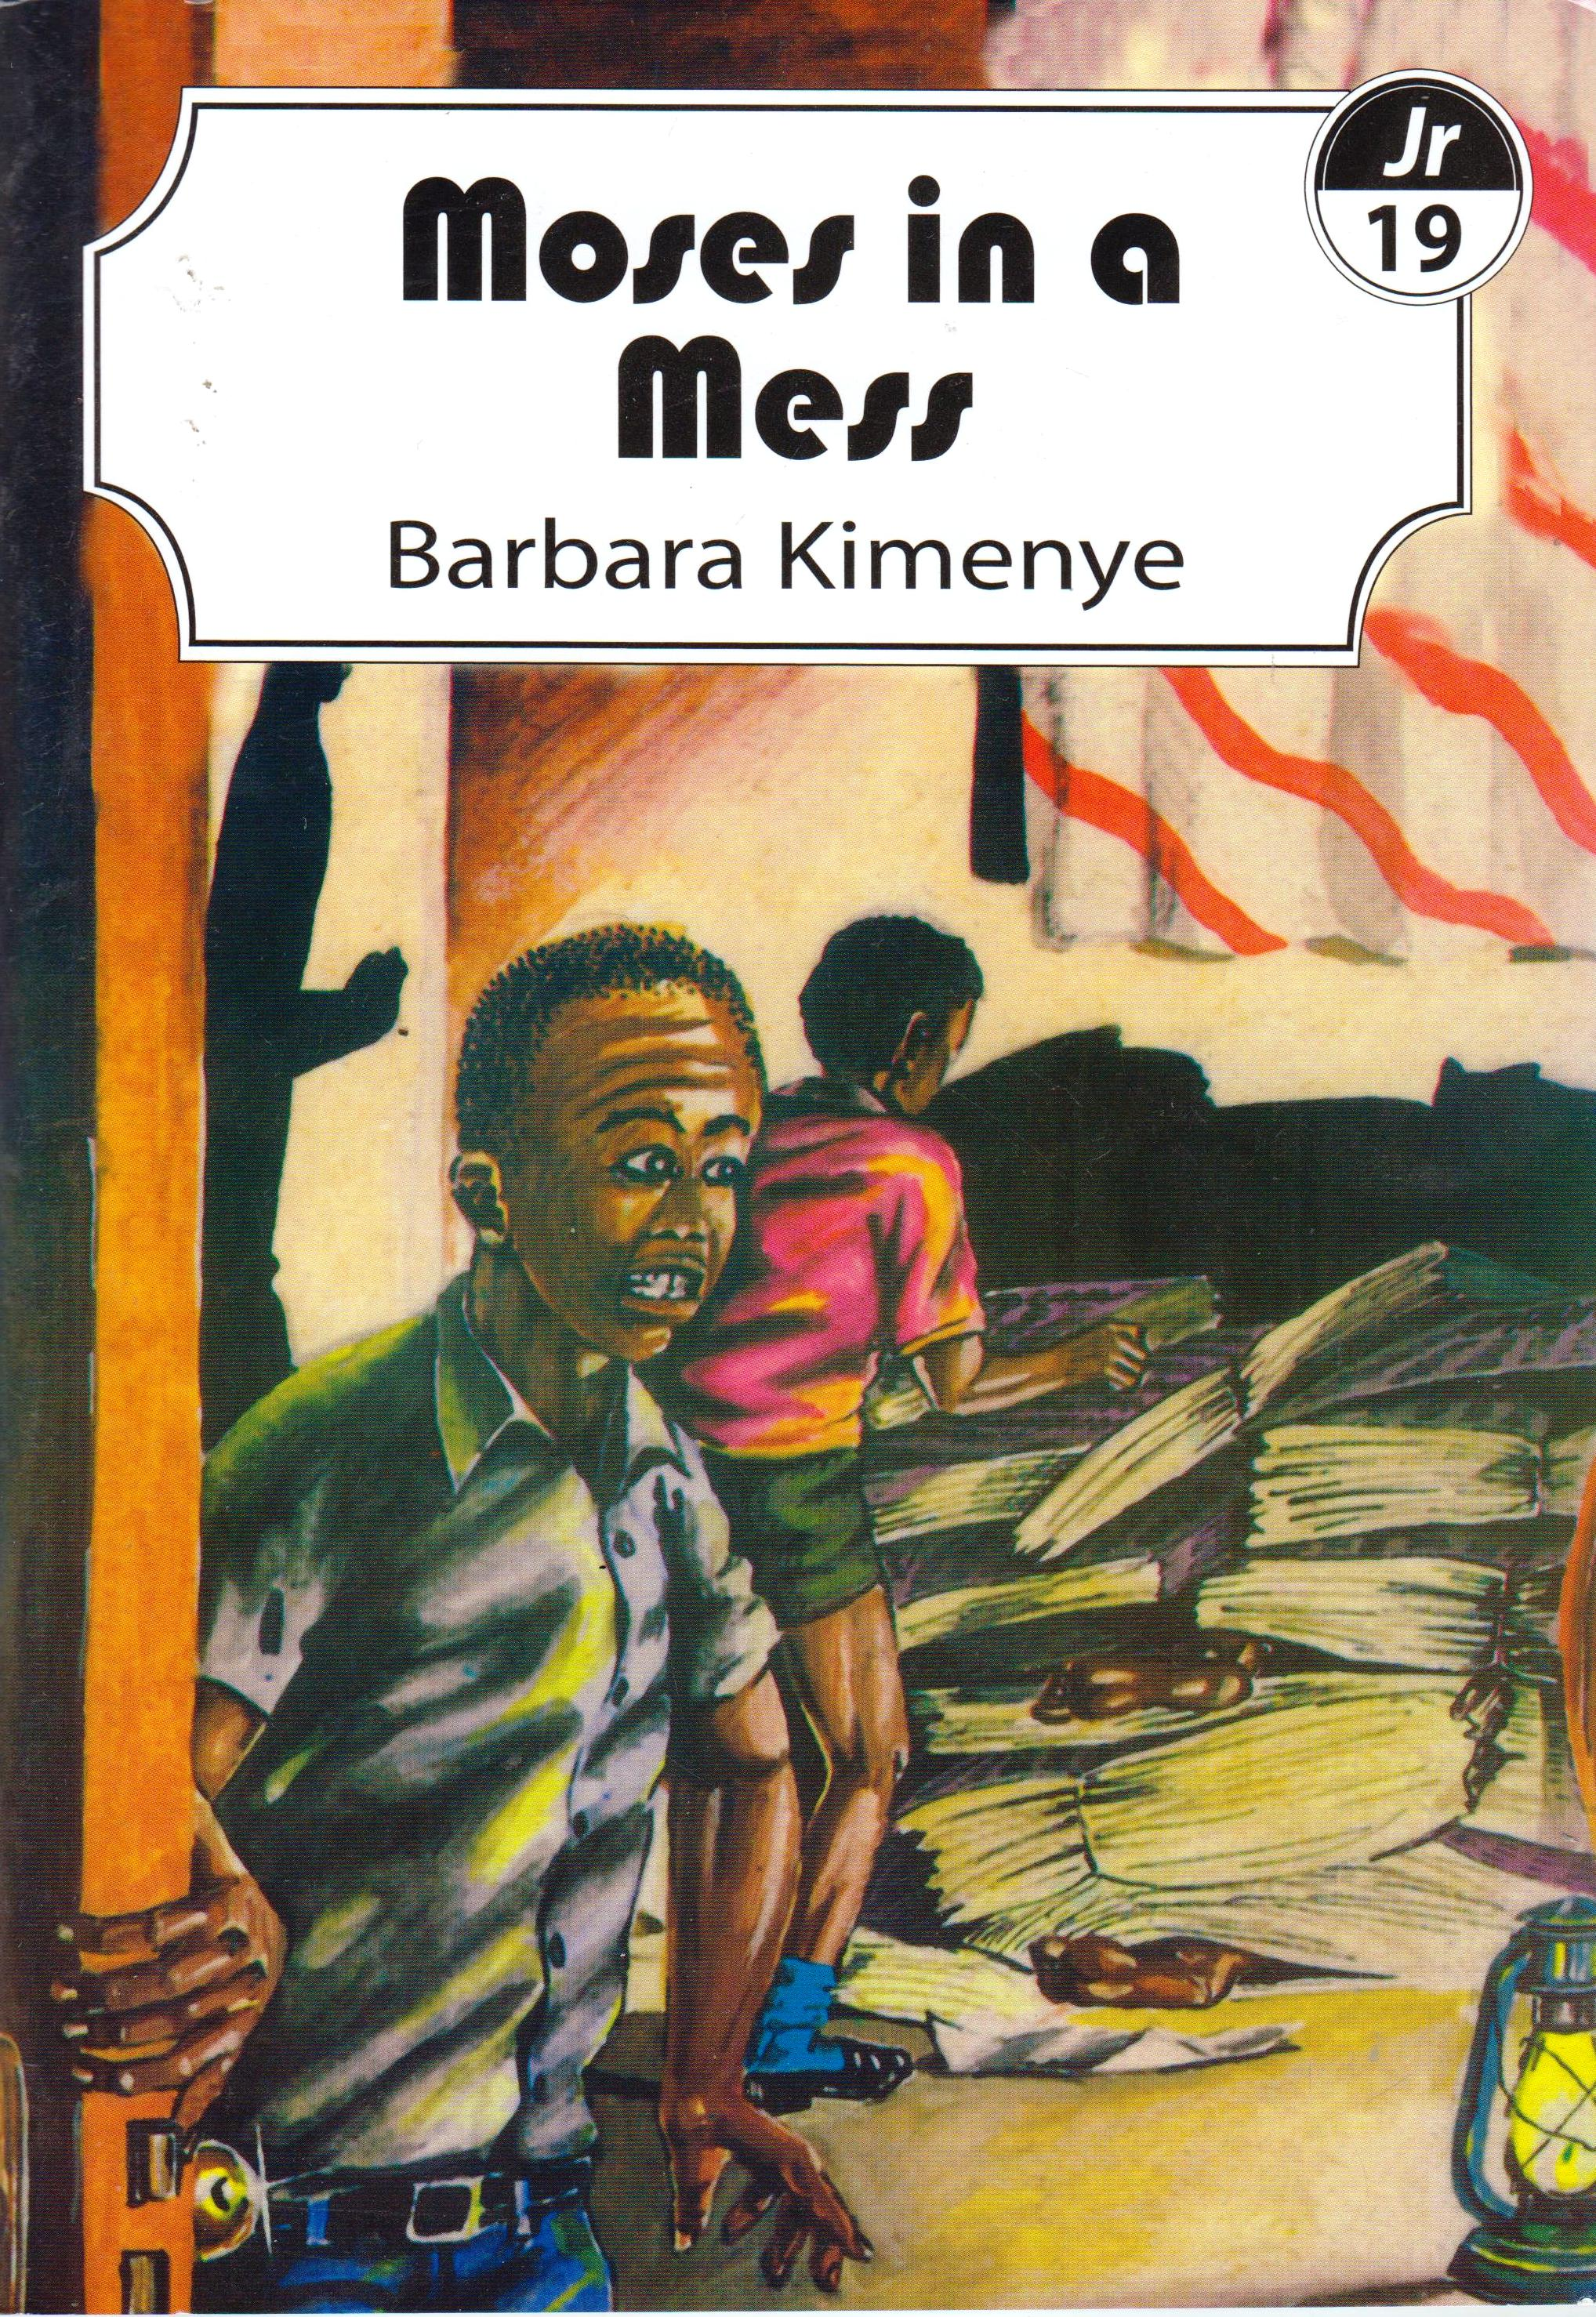 Moses in a Mess EAEP readers 10 - 13 years